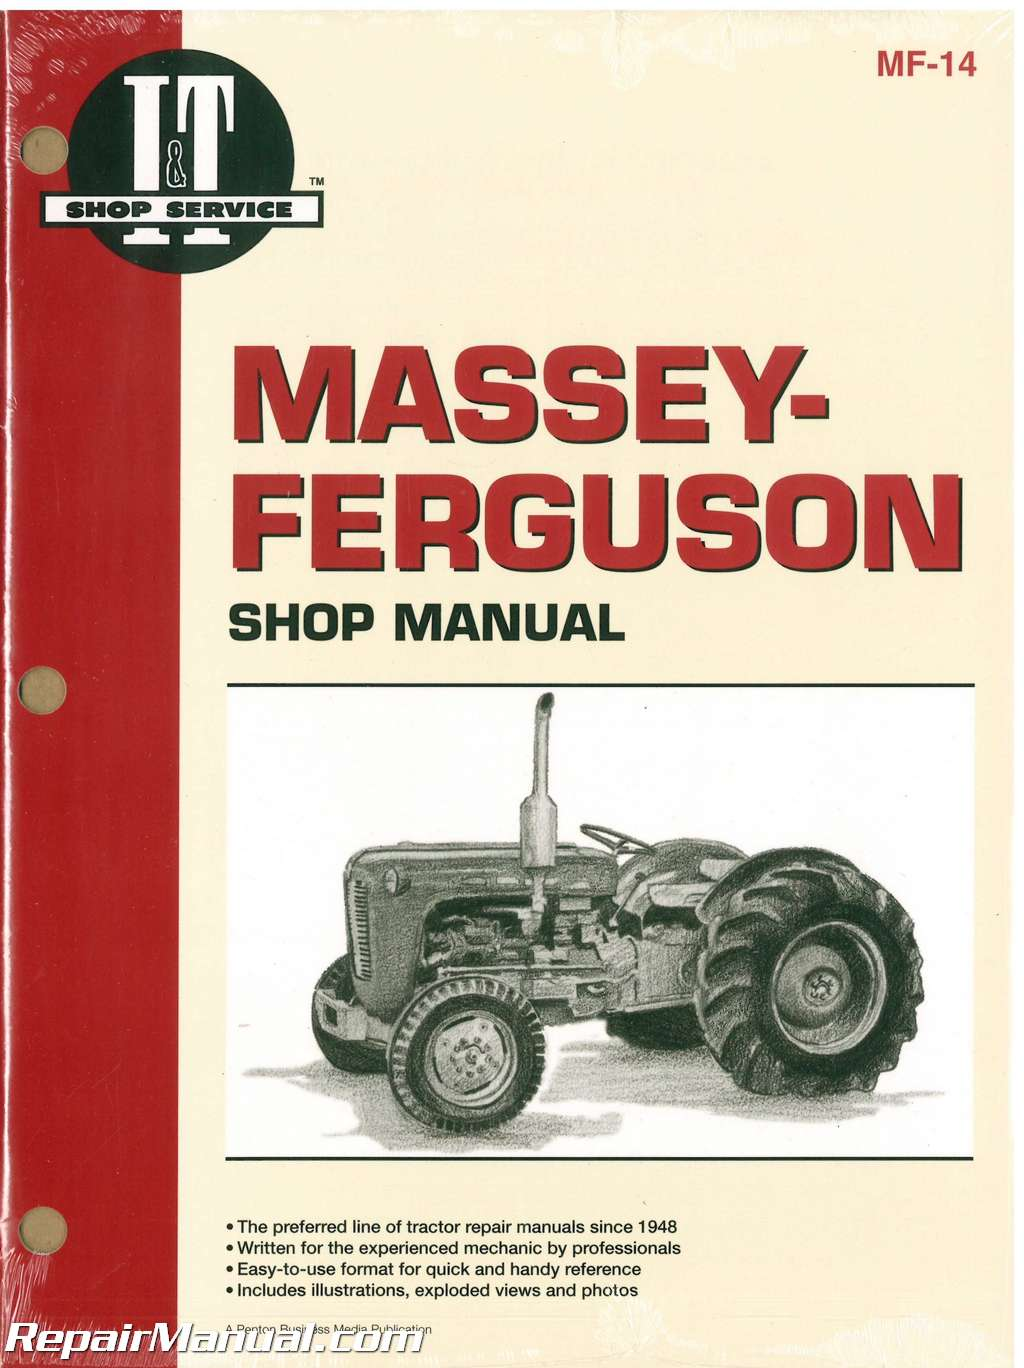 Massey Ferguson F40 MF202 MF204 MF35 MF35 Diesel MF50 MH50 MHF202 TO35 TO35 Diesel Tractor Workshop Manual_001 mf35 diesel deluxe wiring diagram yesterday's tractors mf 35 wiring diagram at eliteediting.co